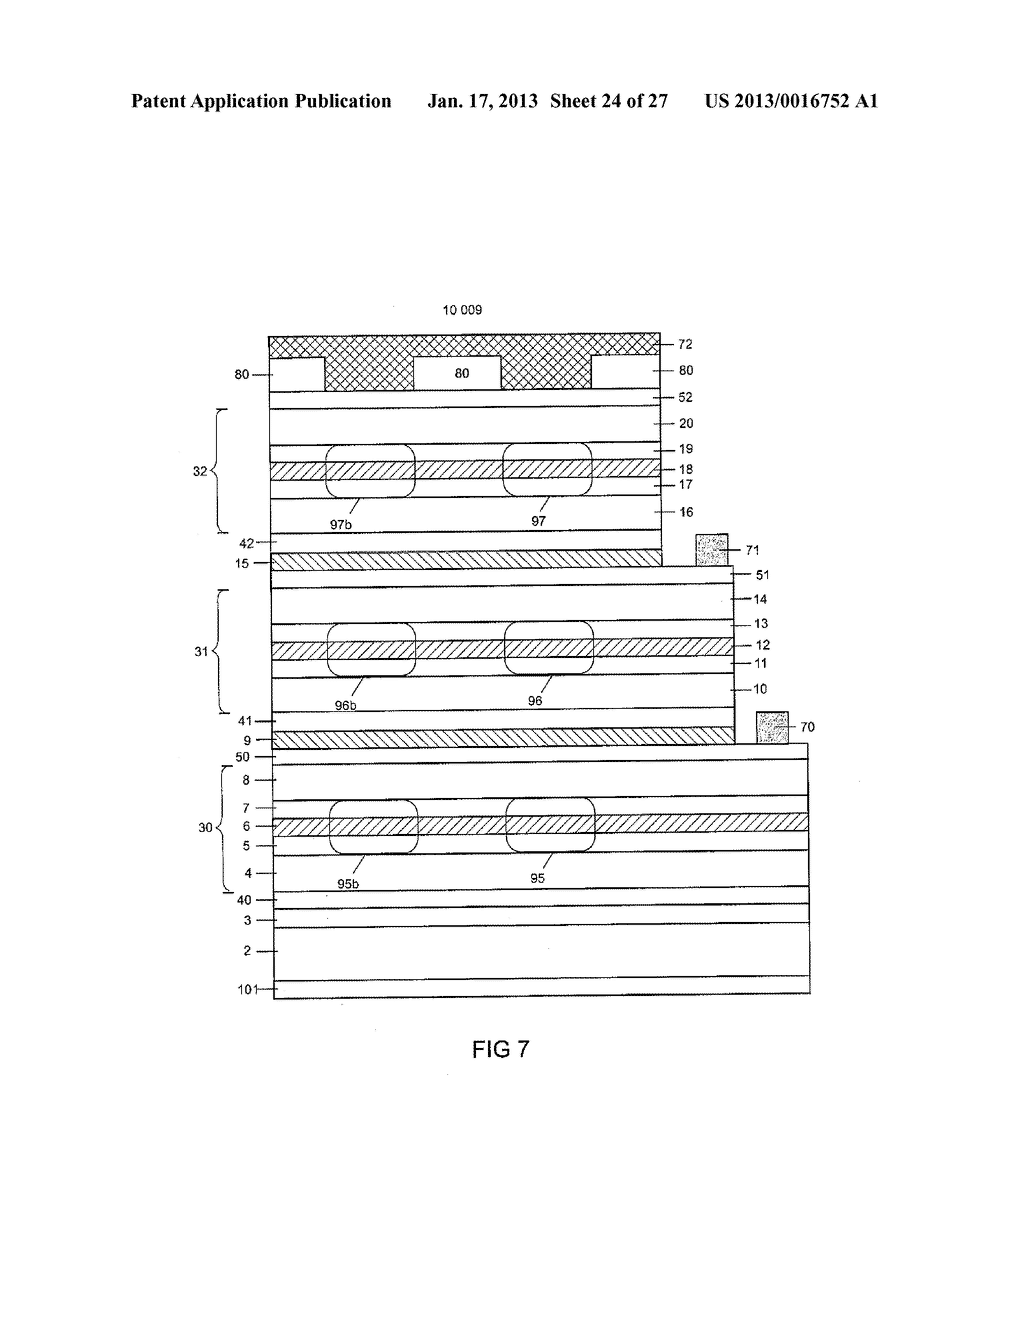 Laser Diode Assembly and Method for Producing a Laser Diode AssemblyAANM Lell; AlfredAACI Maxhutte-HaidhofAACO DEAAGP Lell; Alfred Maxhutte-Haidhof DEAANM Straussburg; MartinAACI DonaustaufAACO DEAAGP Straussburg; Martin Donaustauf DE - diagram, schematic, and image 25